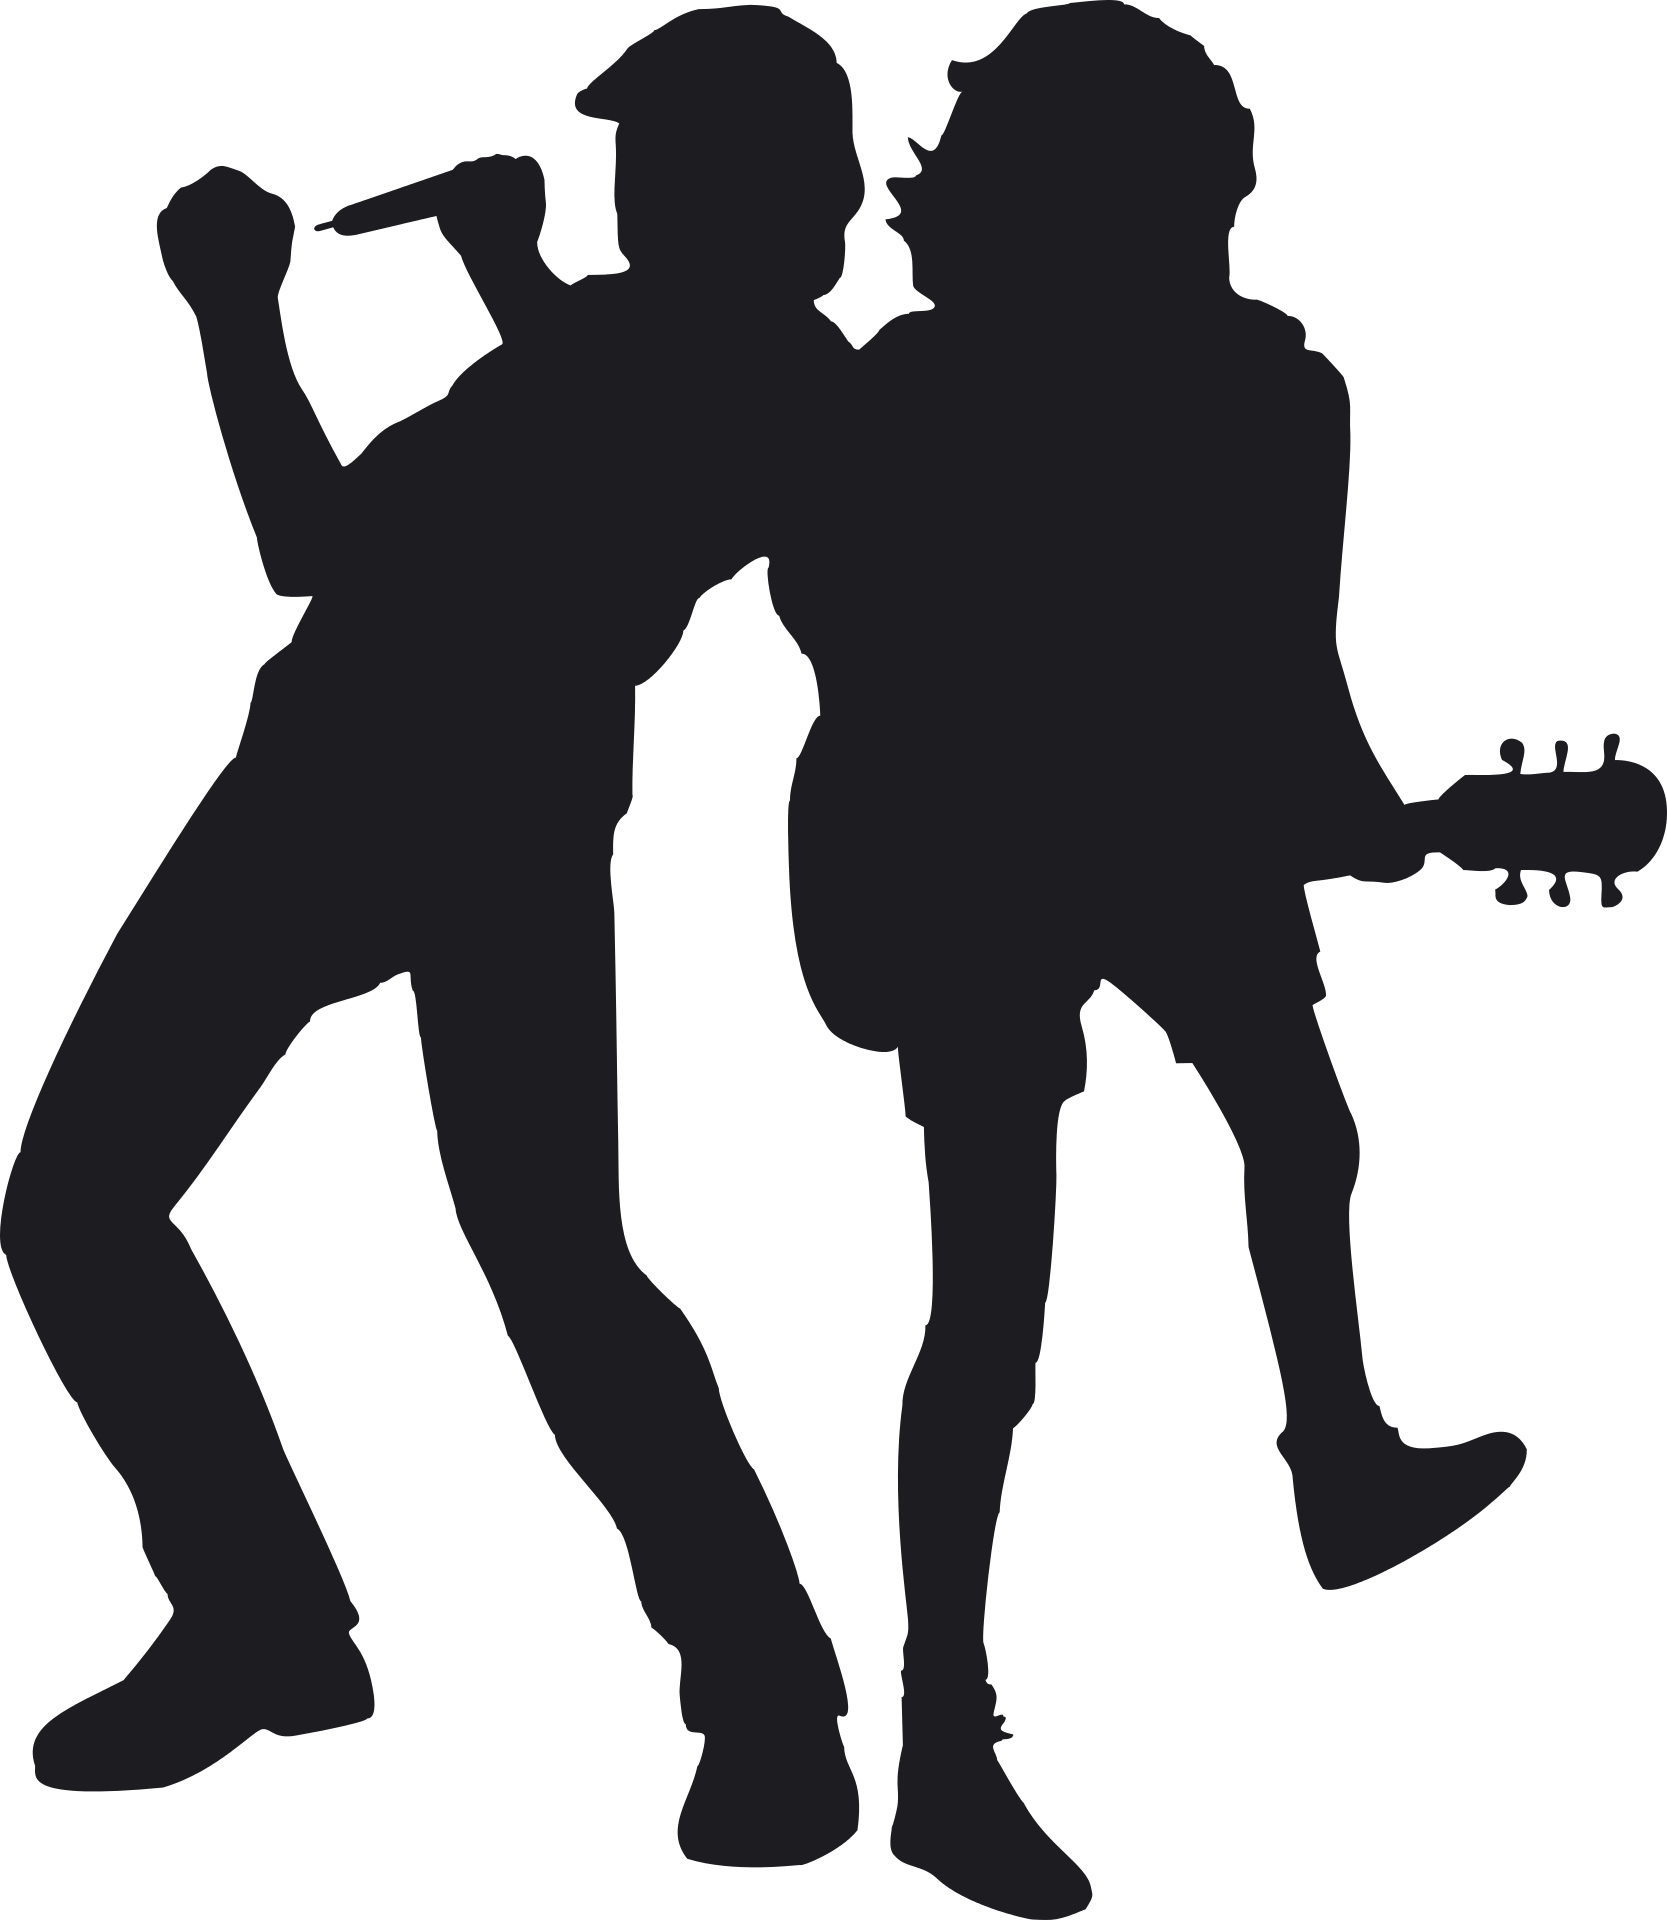 band-of-musicians